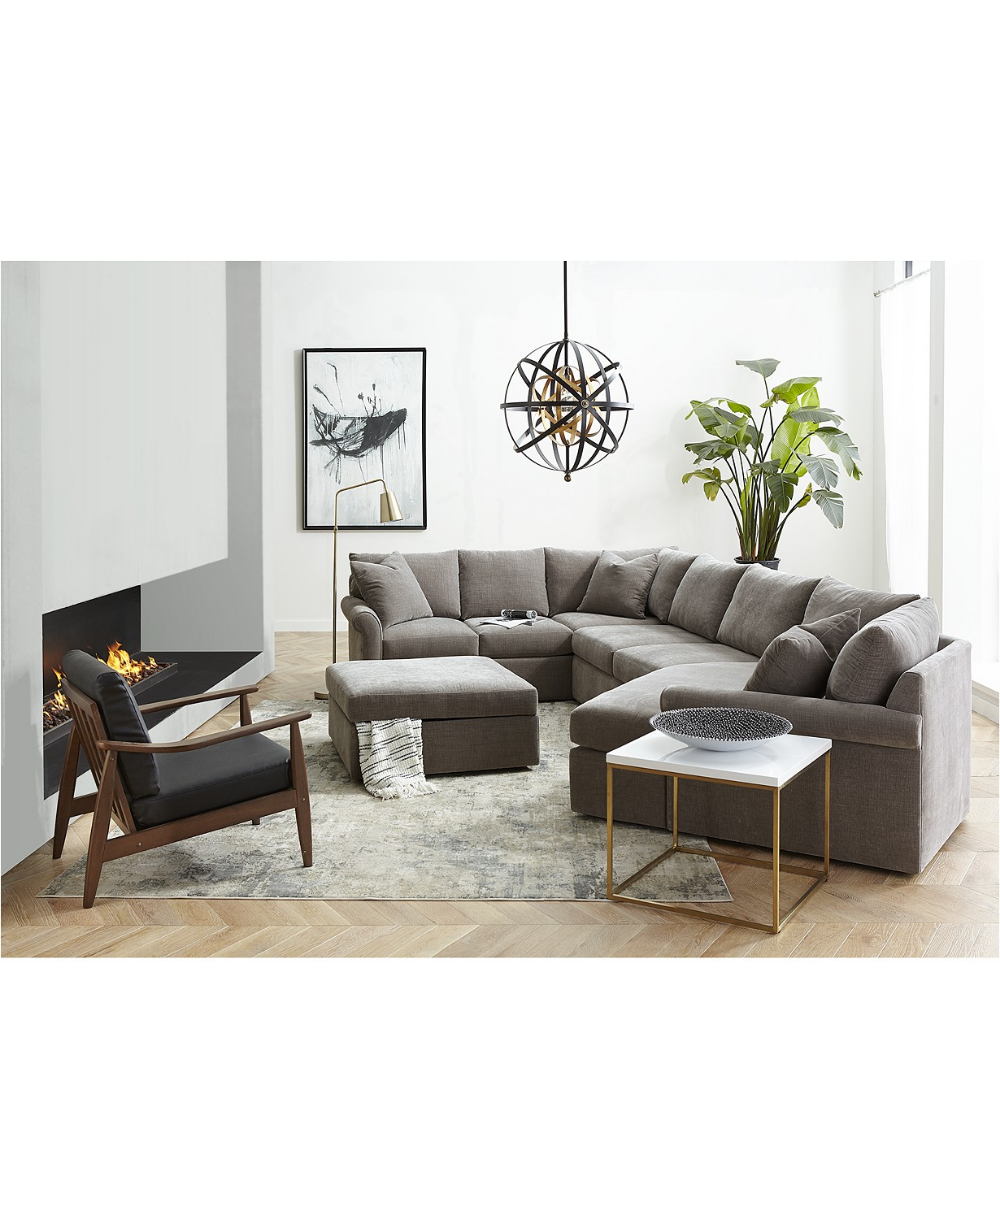 Furniture Wedport 3 Pc Fabric Modular Sectional Sofa With Cuddler Created For Macy S Reviews Furniture Macy S Fabric Sectional Sofas Sectional Sofa With Chaise Modular Sectional Sofa